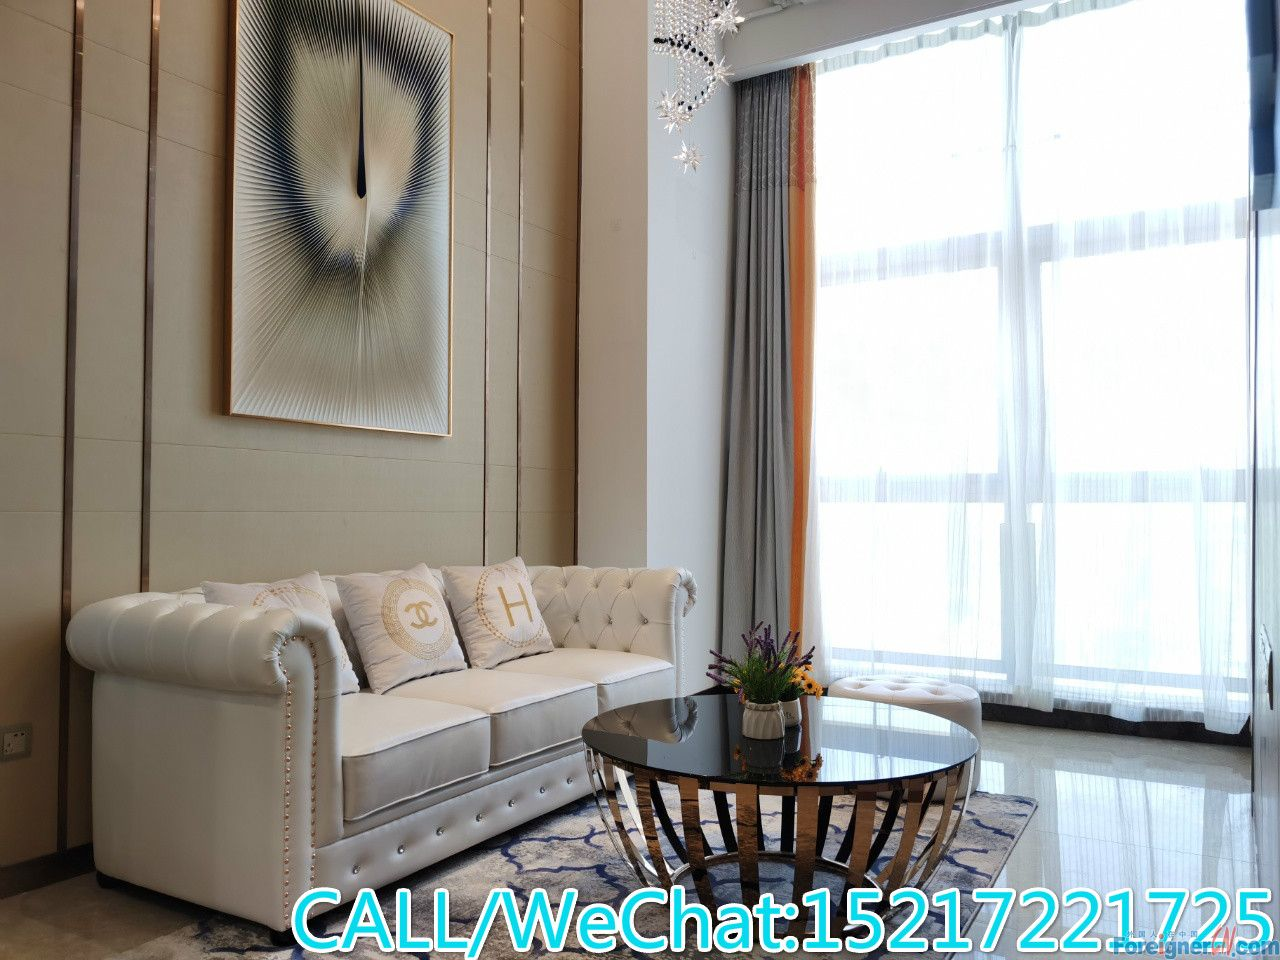 Morden loft,fully furnished,clean and bright,warm and comfortable,CBD AREA.